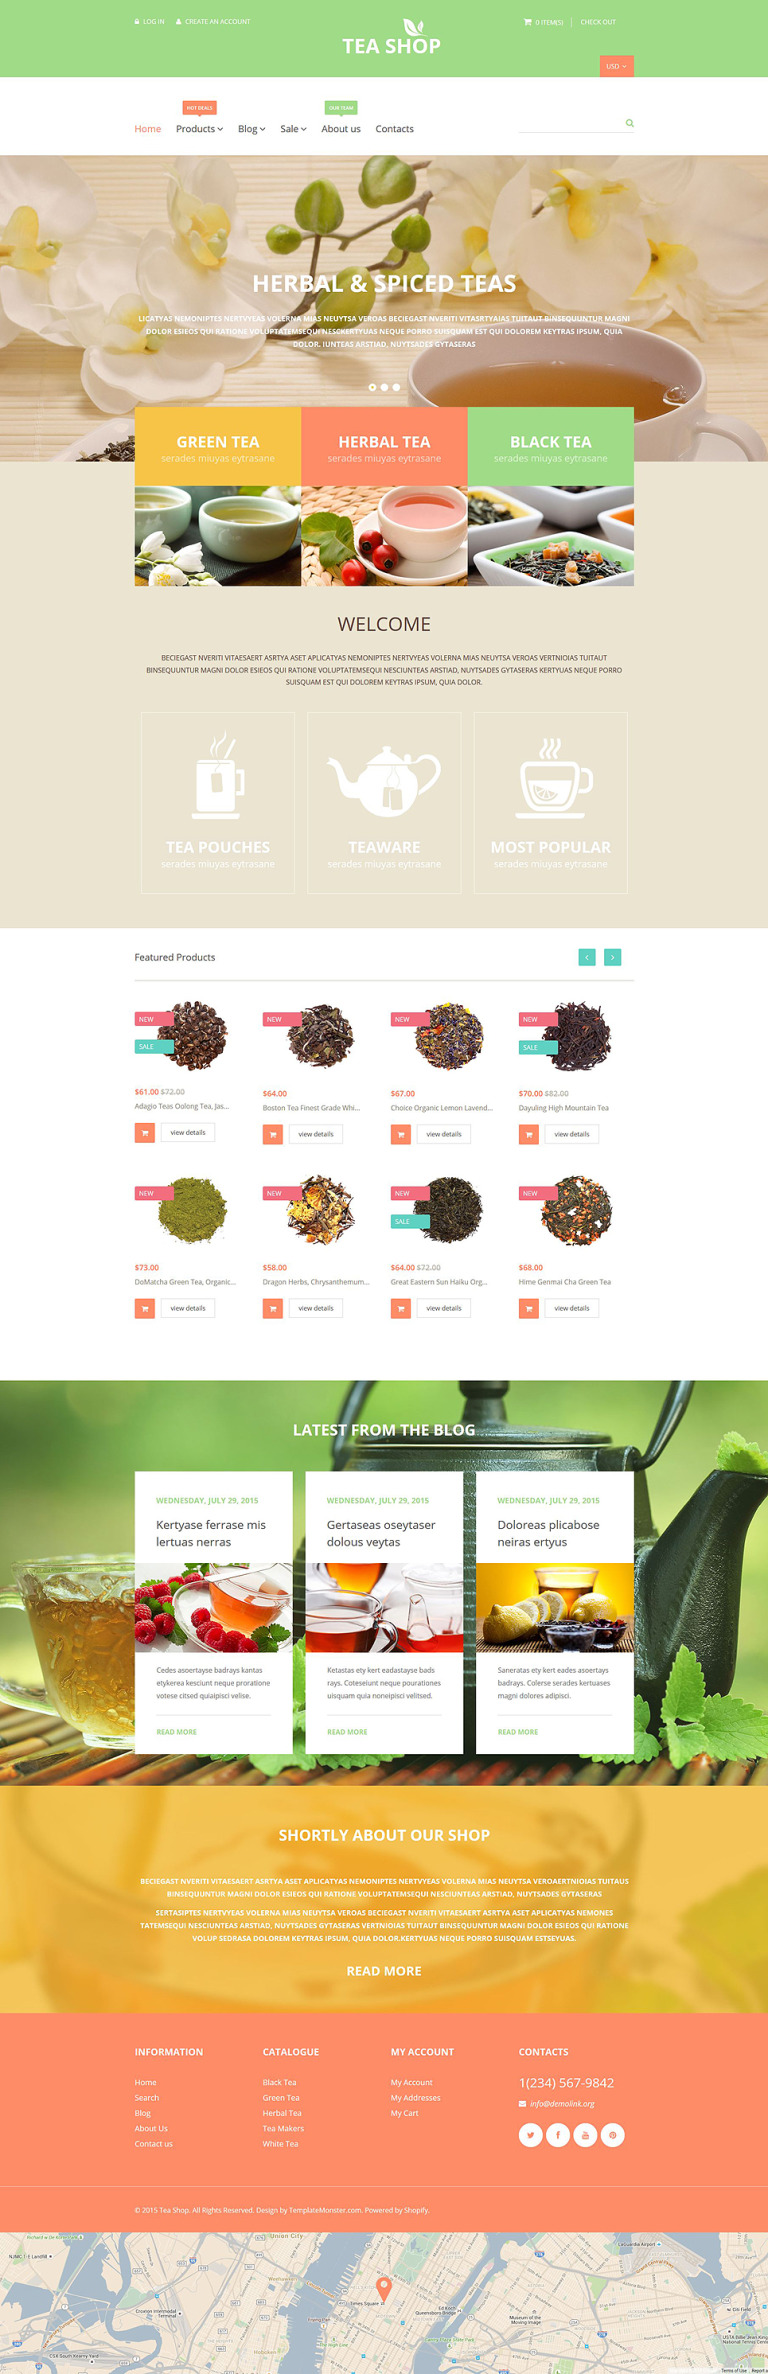 Tea Shop Shopify Theme New Screenshots BIG